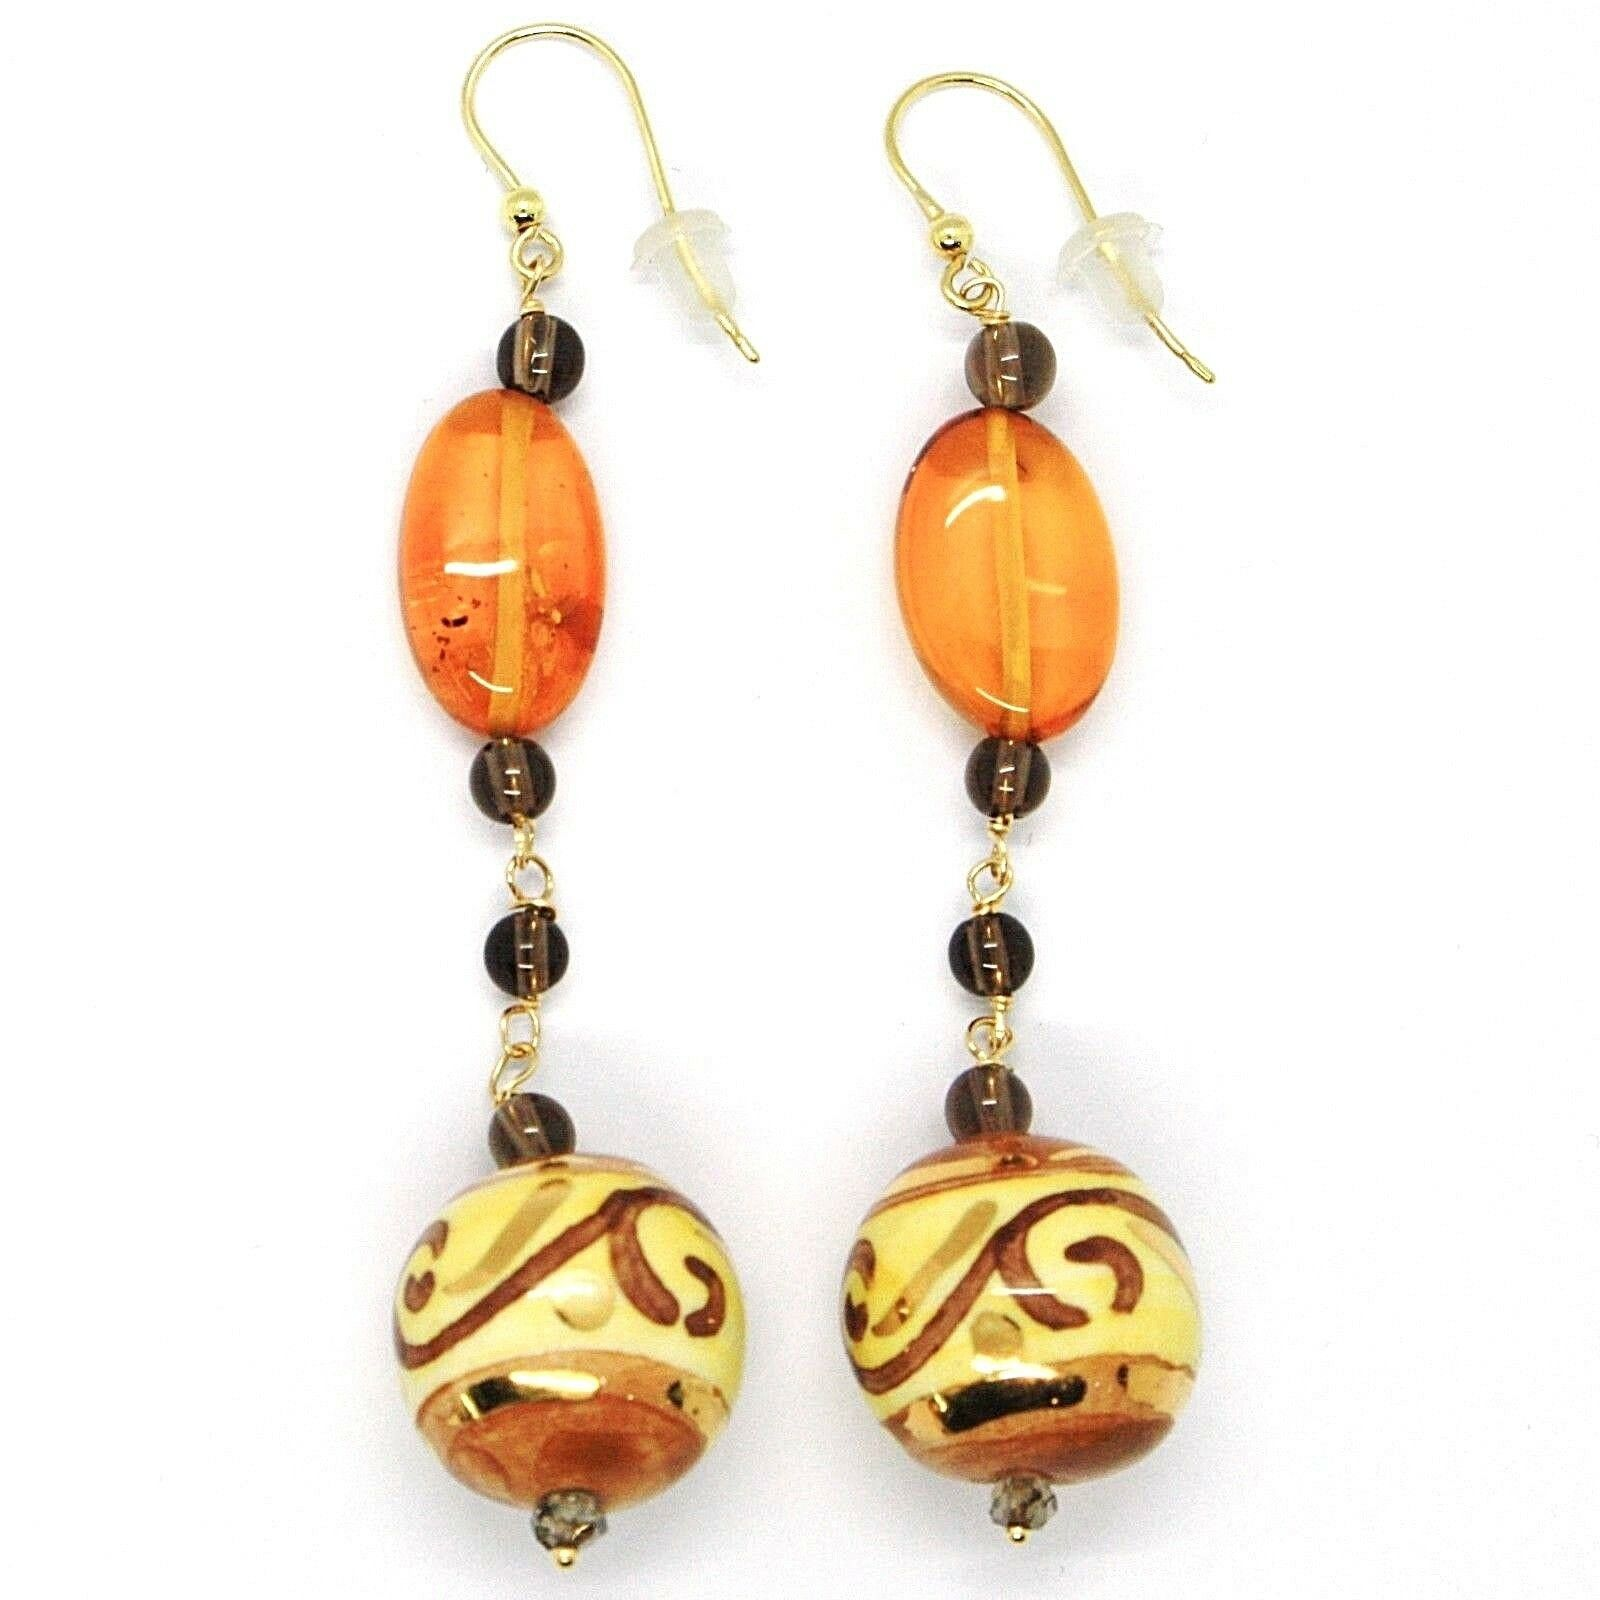 18K YELLOW GOLD EARRINGS OVAL AMBER, POTTERY CERAMIC BALLS HAND PAINTED IN ITALY